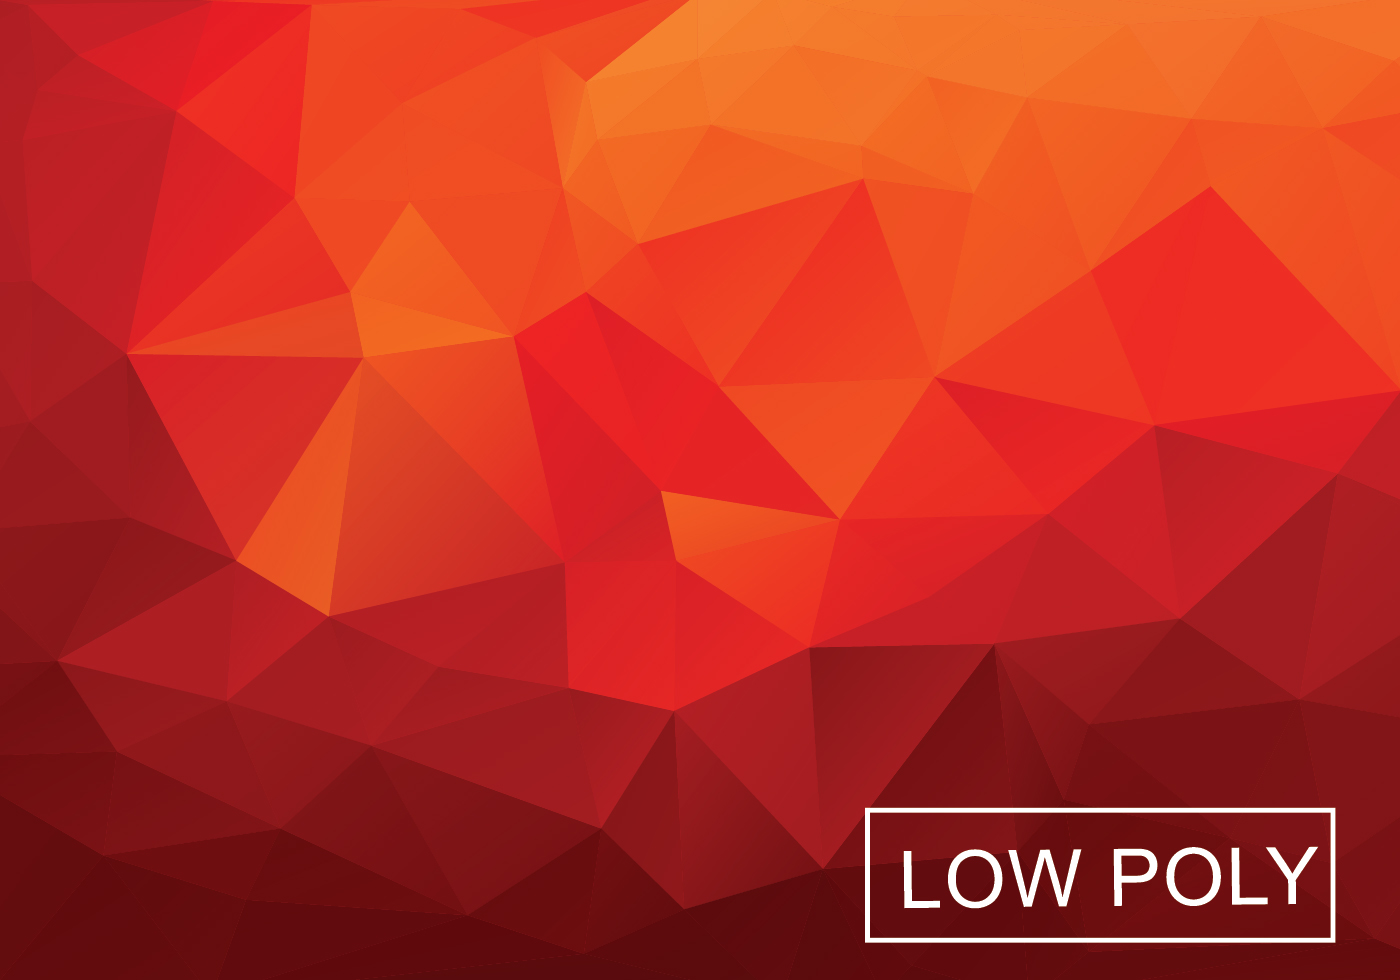 Warm Red Polygonal Background Vector - Download Free Vector Art, Stock ...